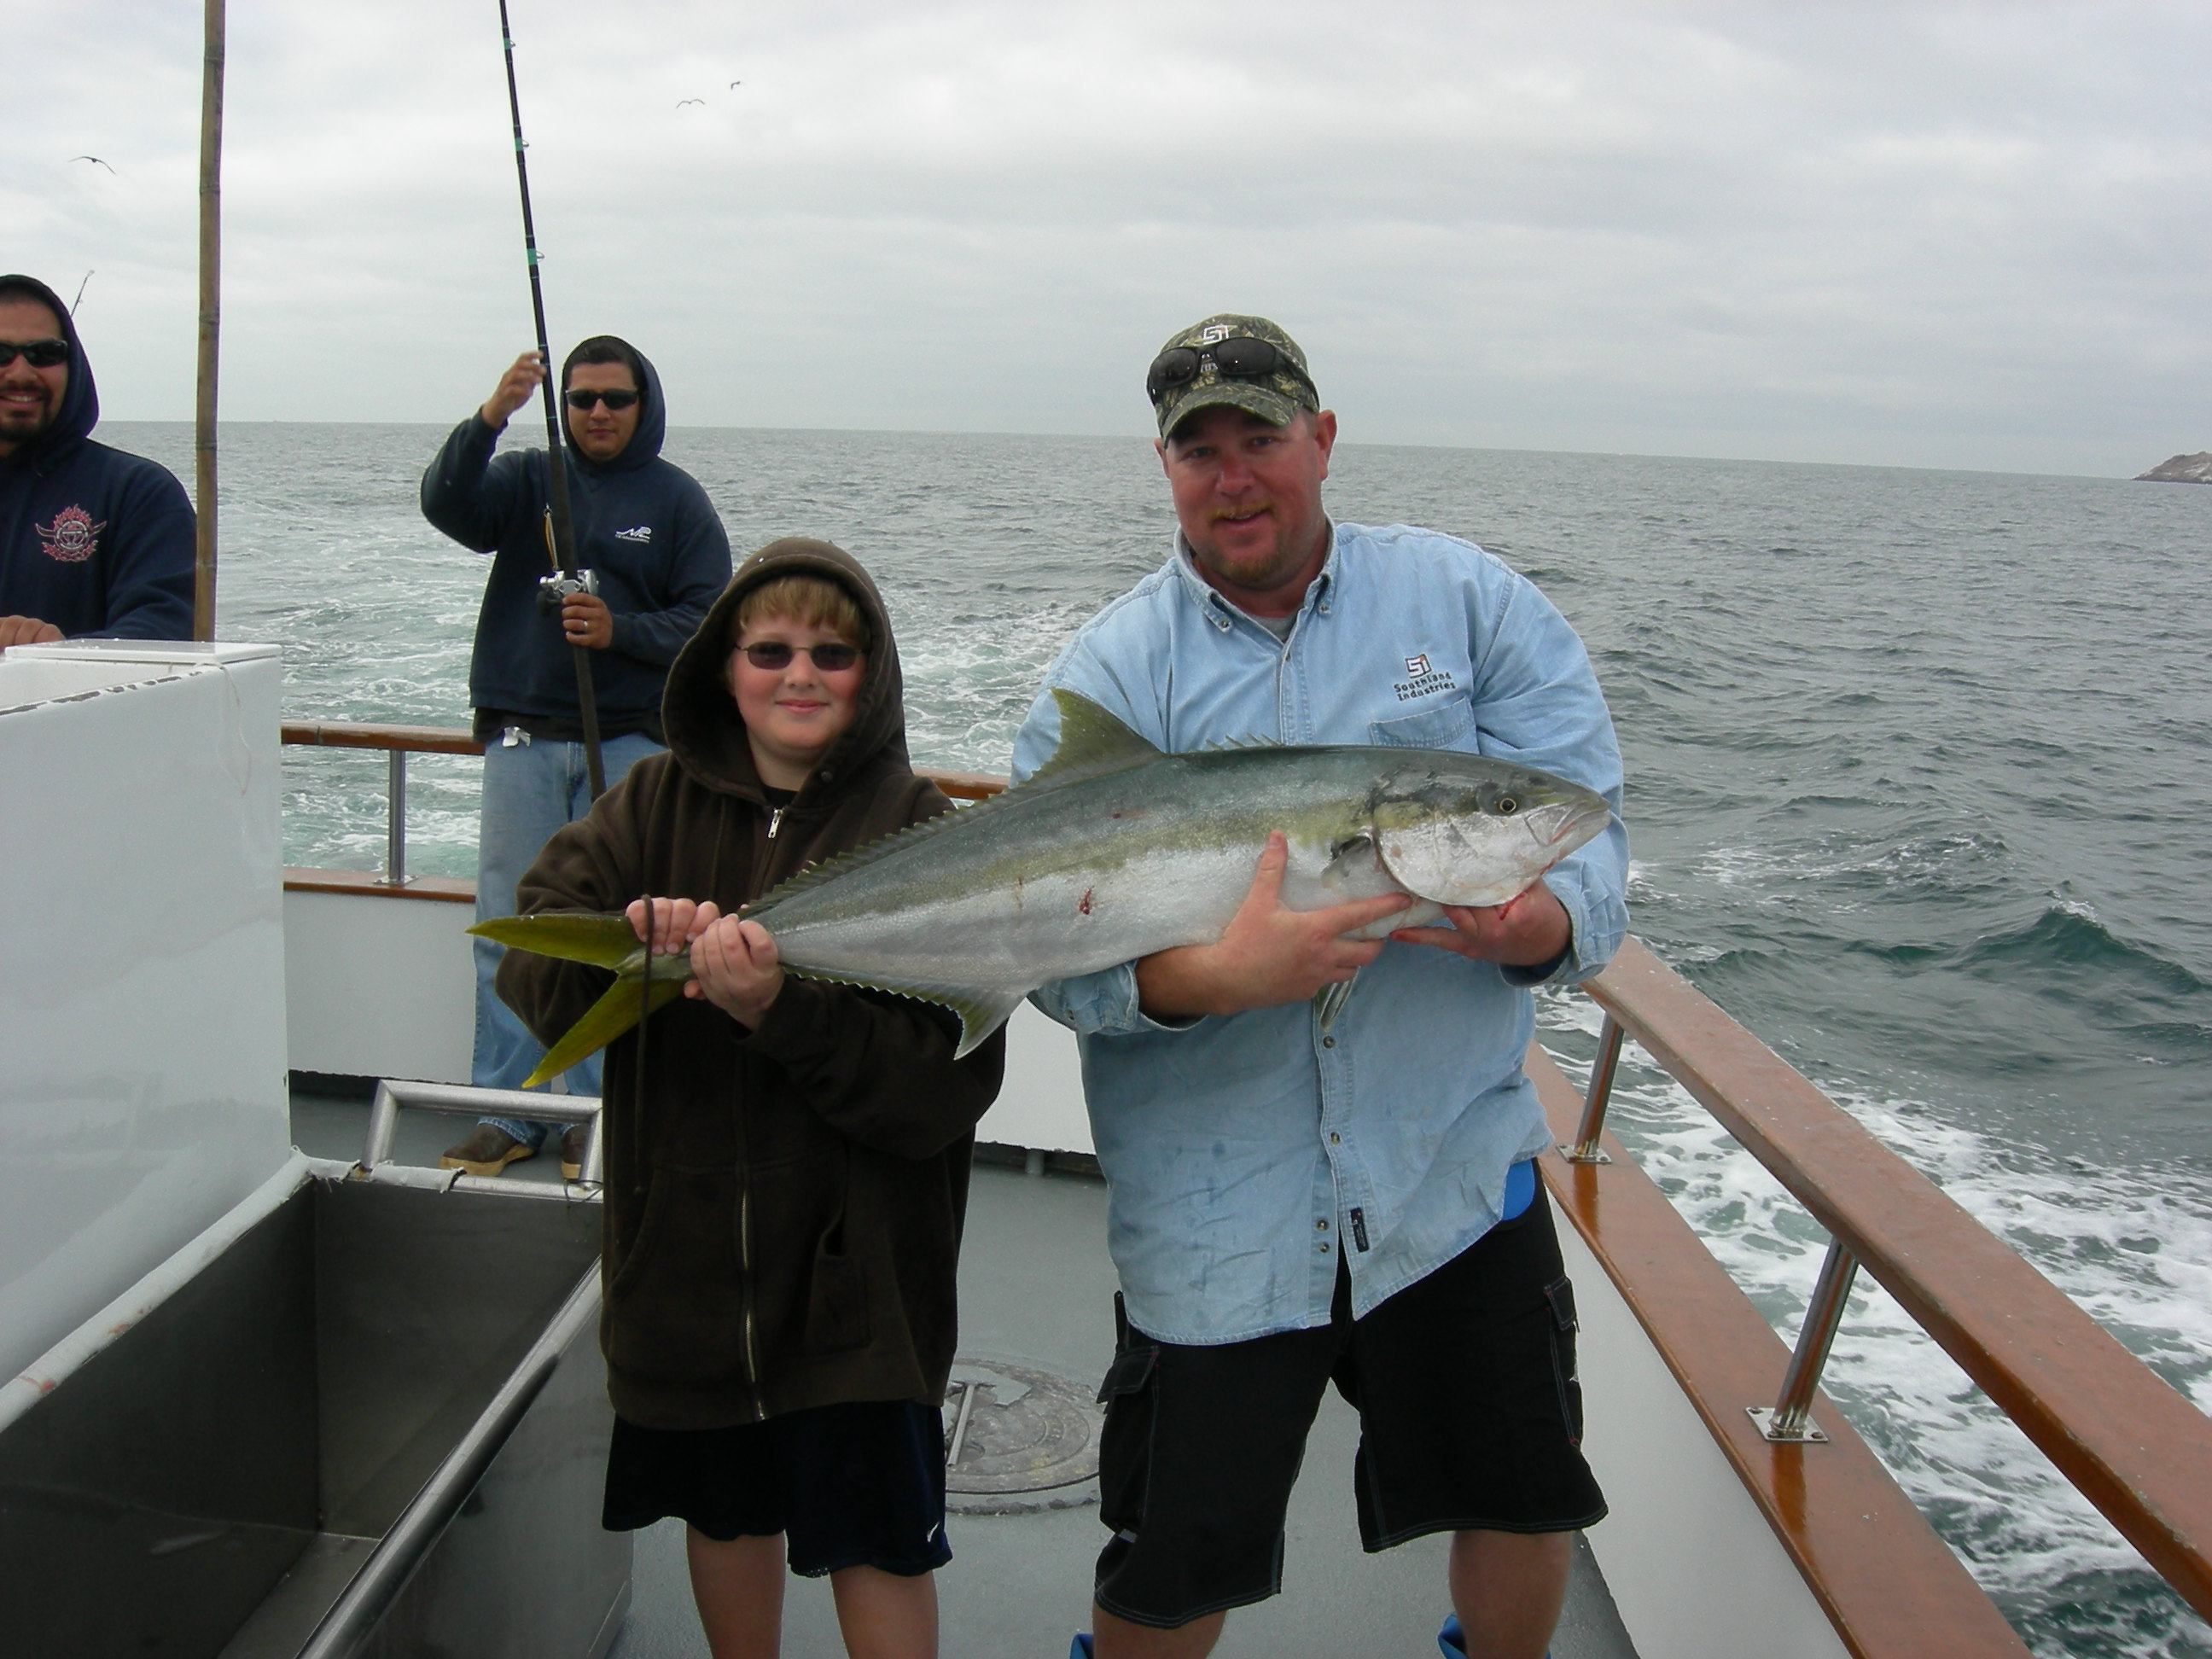 Legend sportfishing 976 tuna the original leader in fish for Seaforth landing fish report